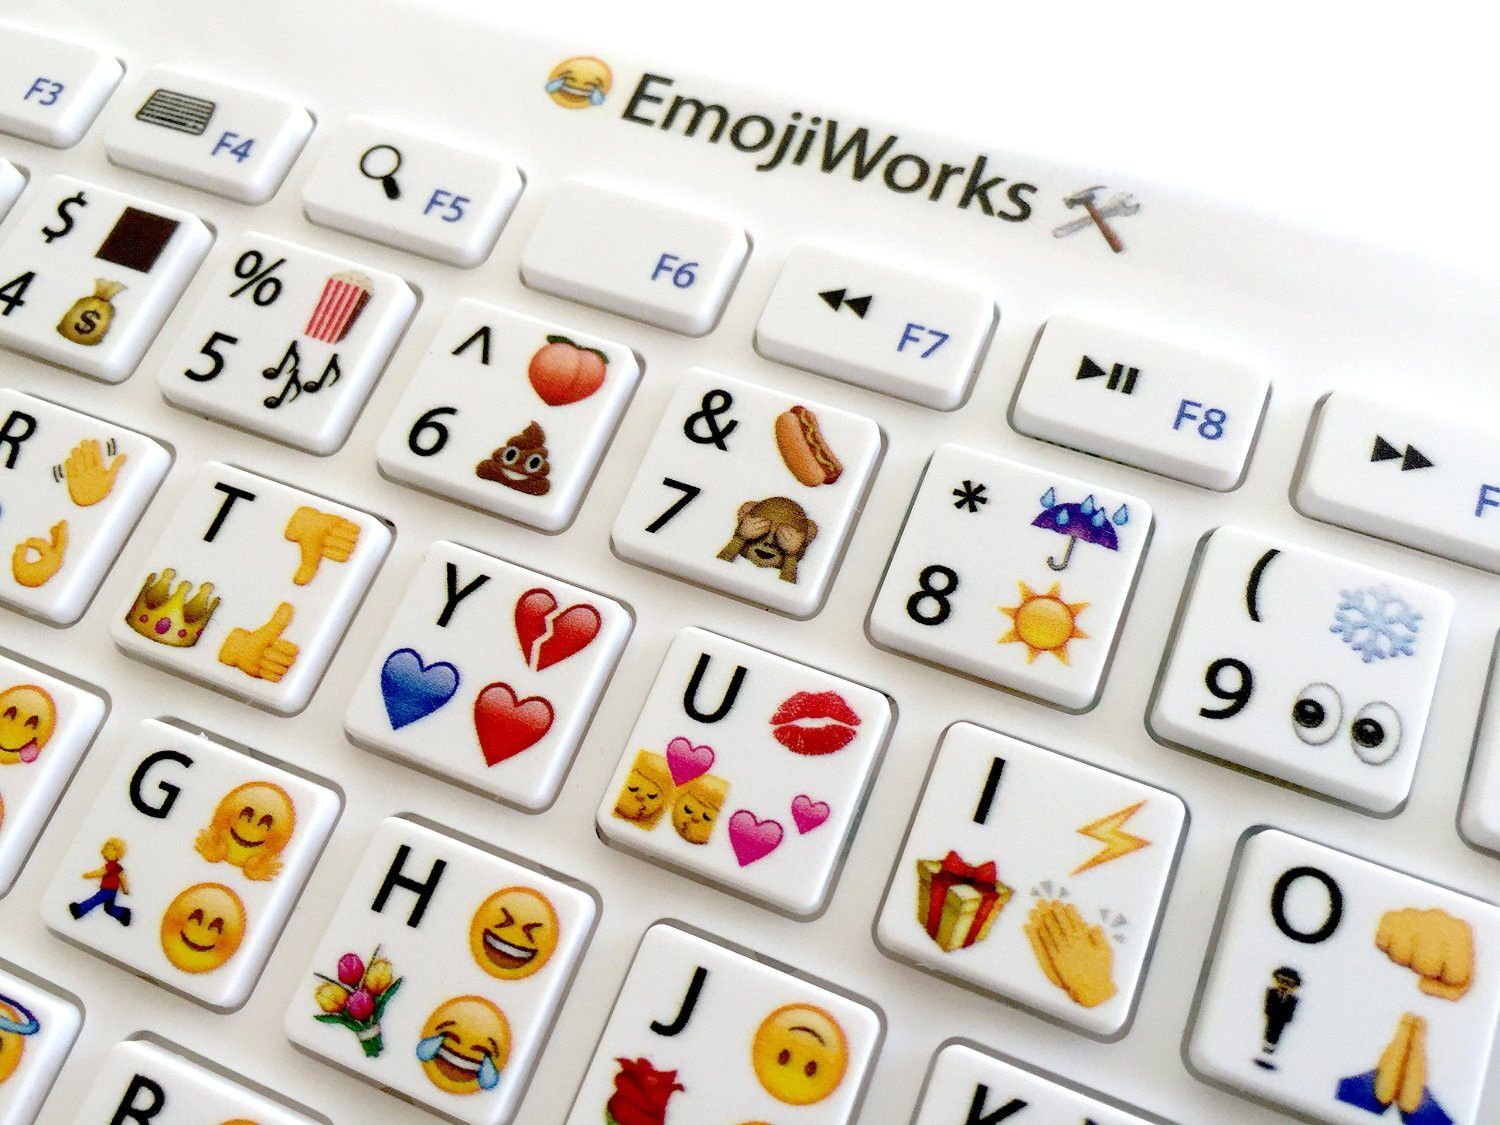 How To Get Emojis On Ipad With Bluetooth Keyboard